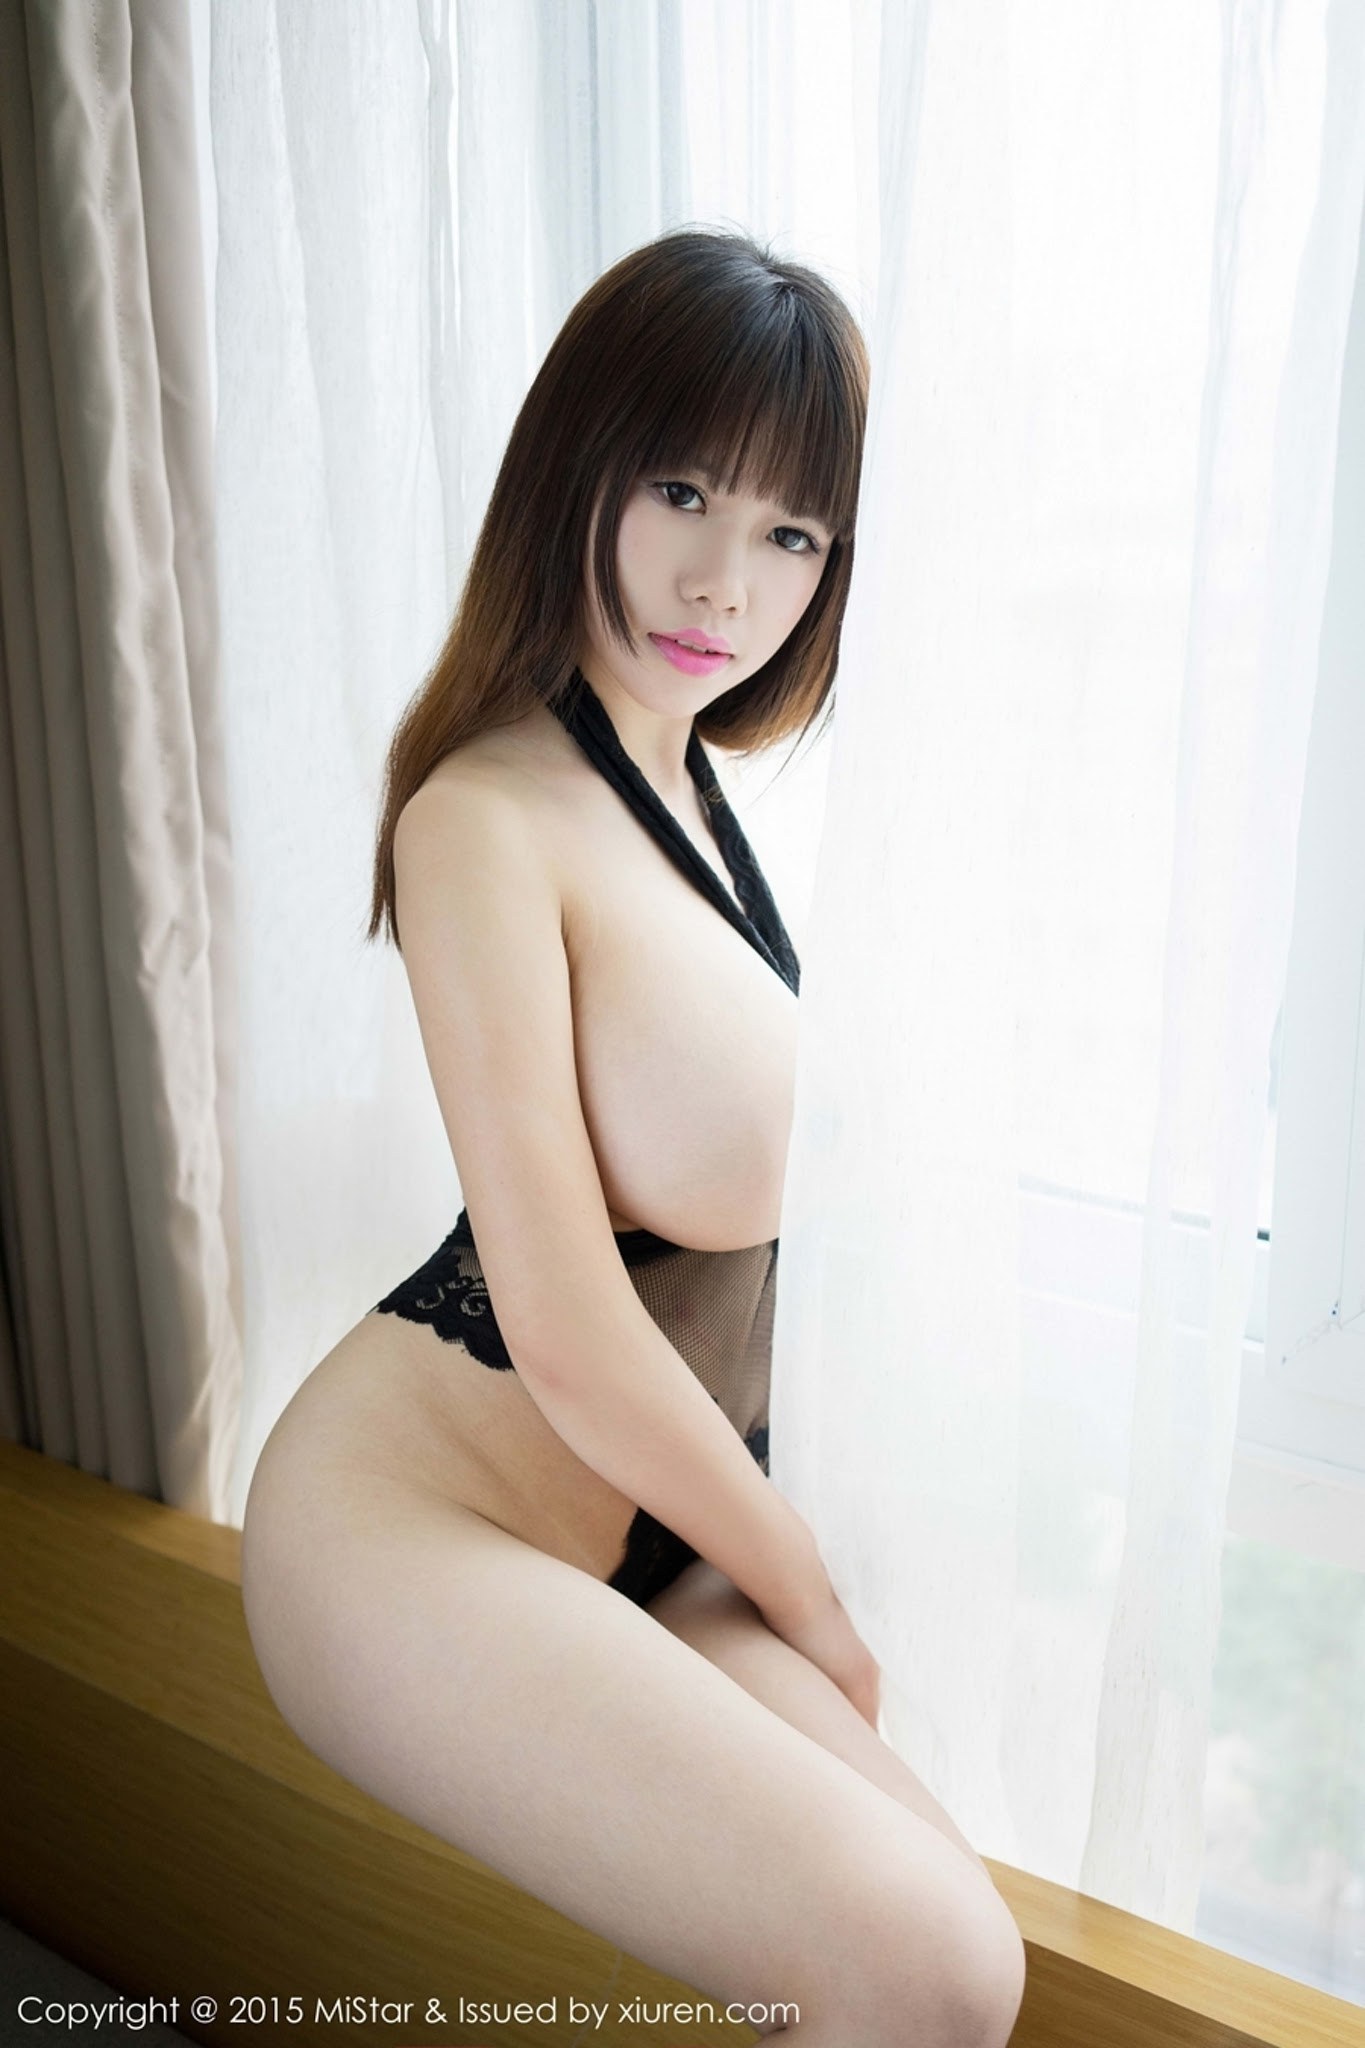 Japanese girl with gigantic tits 7 - 1 8